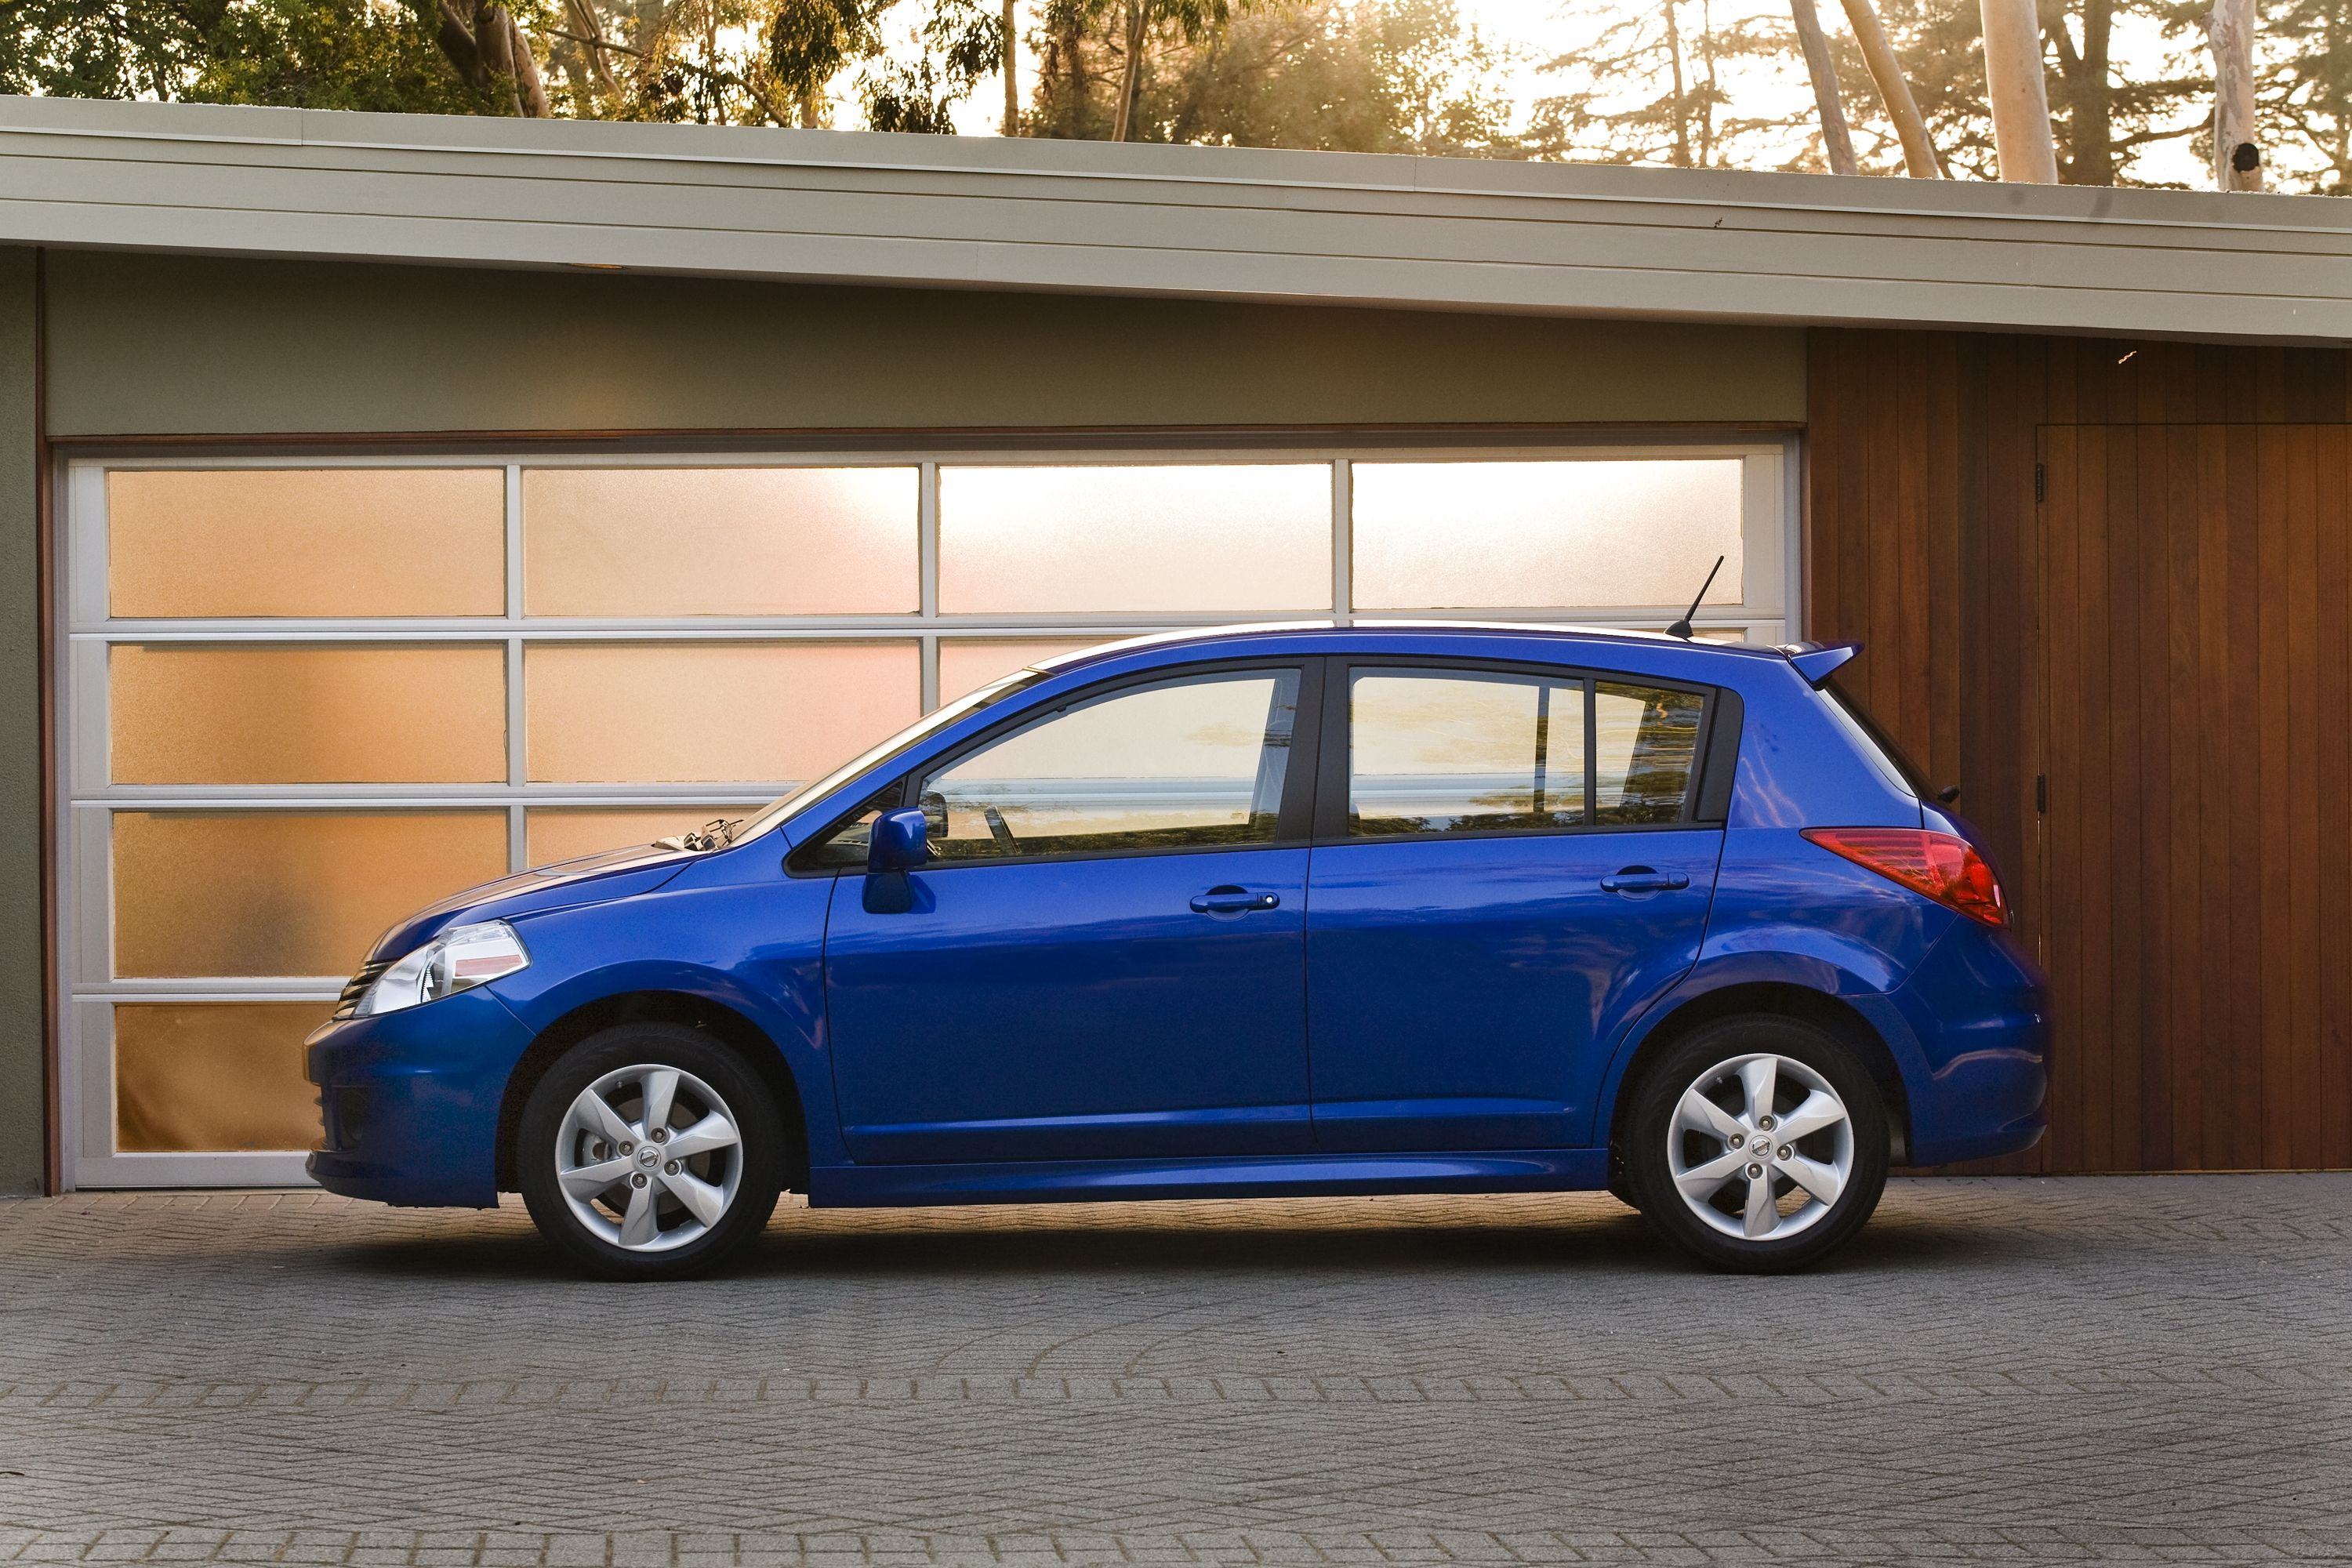 Once Again The Front Wheel Drive 2012 Nissan Versa Hatchback Fuel Filter Continues To Provide Excellent Efficiency Without Sacrificing Performance Or Roominess